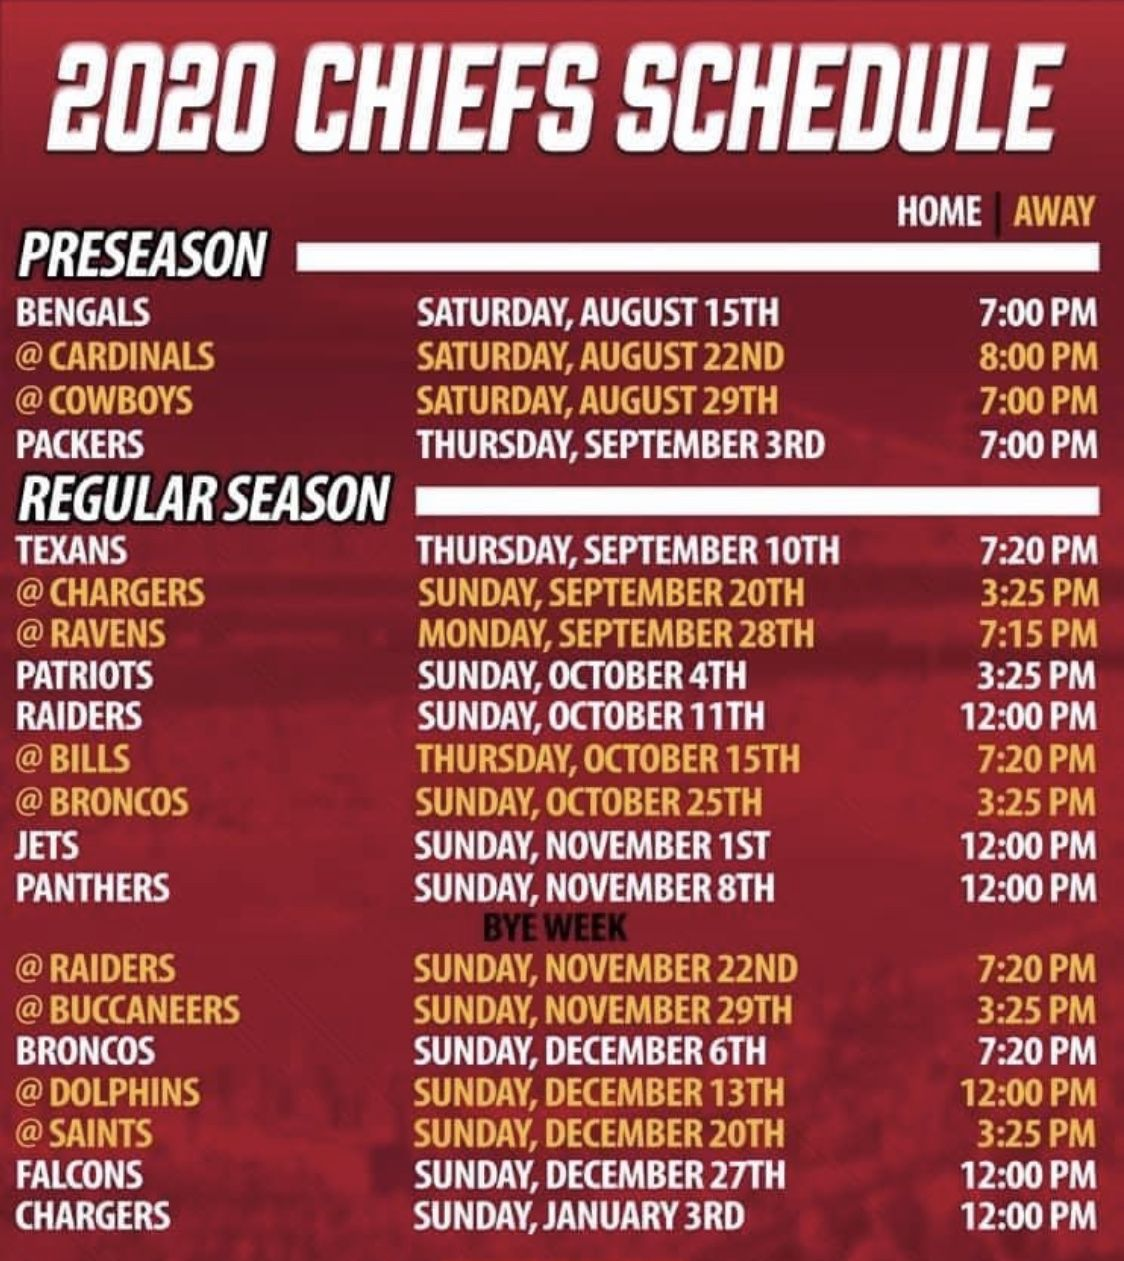 Pin By Brenda Frazier On Chiefs Football In 2020 Chiefs Schedule Chiefs Football Kansas City Chiefs Football